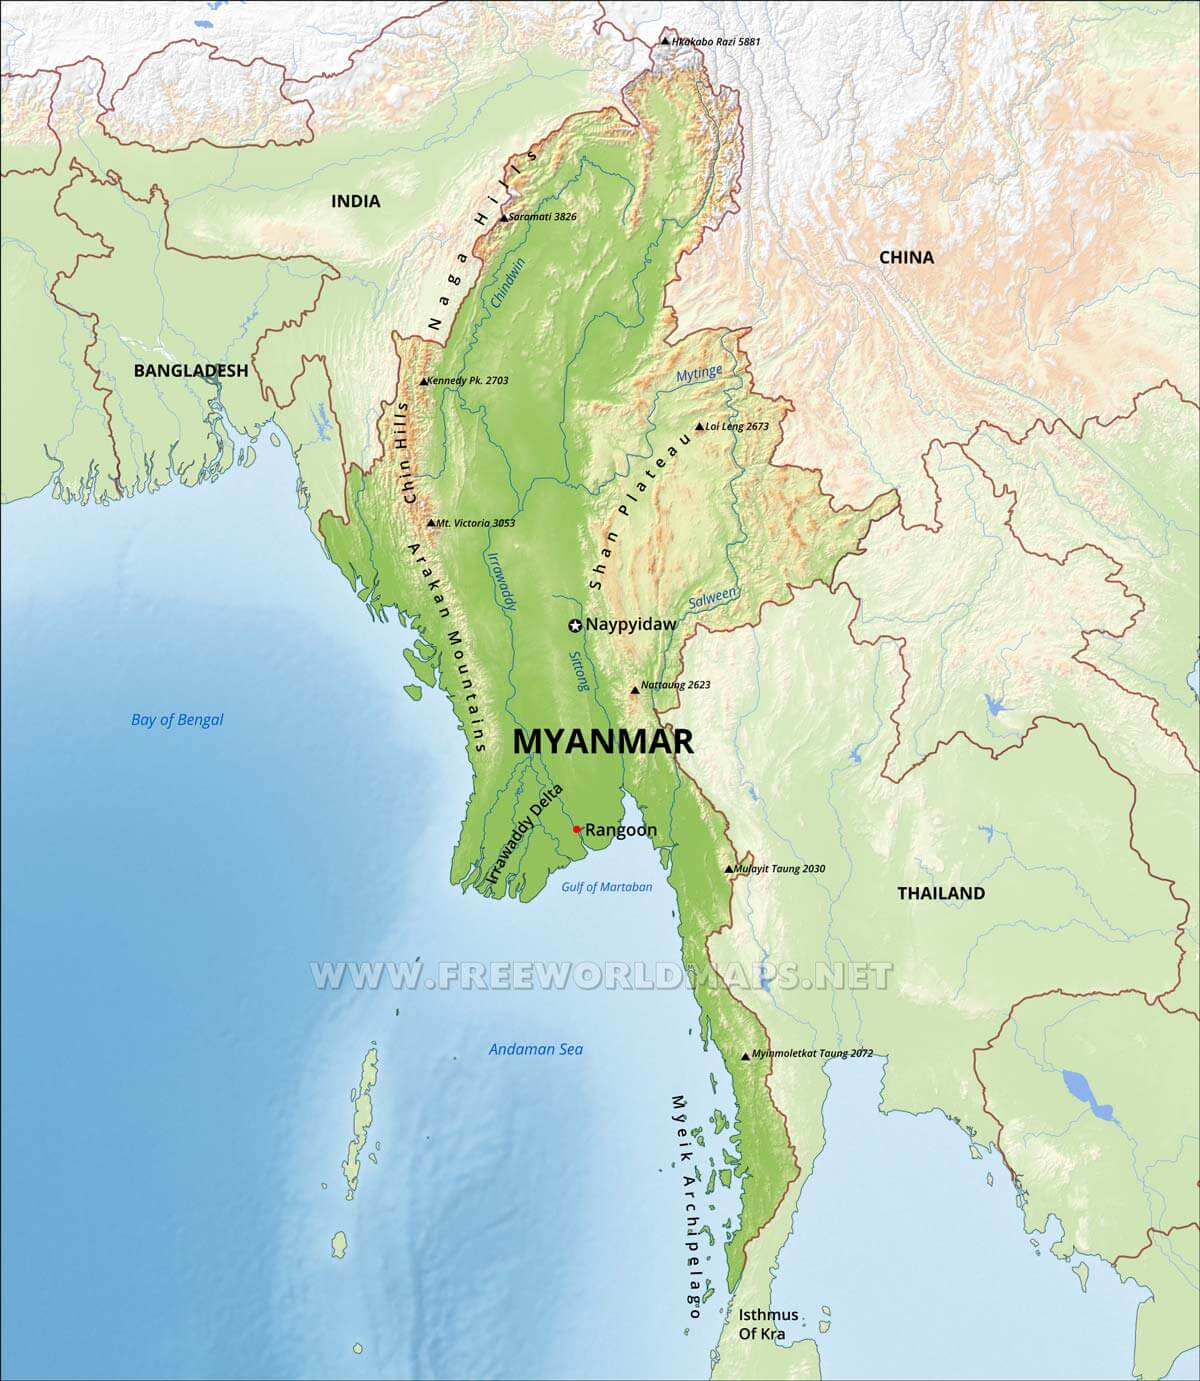 the geography and climate of thailand Travel portal offers the countrys' geography includes details on topography, location, terrain, map references, area, land boundaries, climate, natural resources, land use, natural hazards, and environment of thailand.